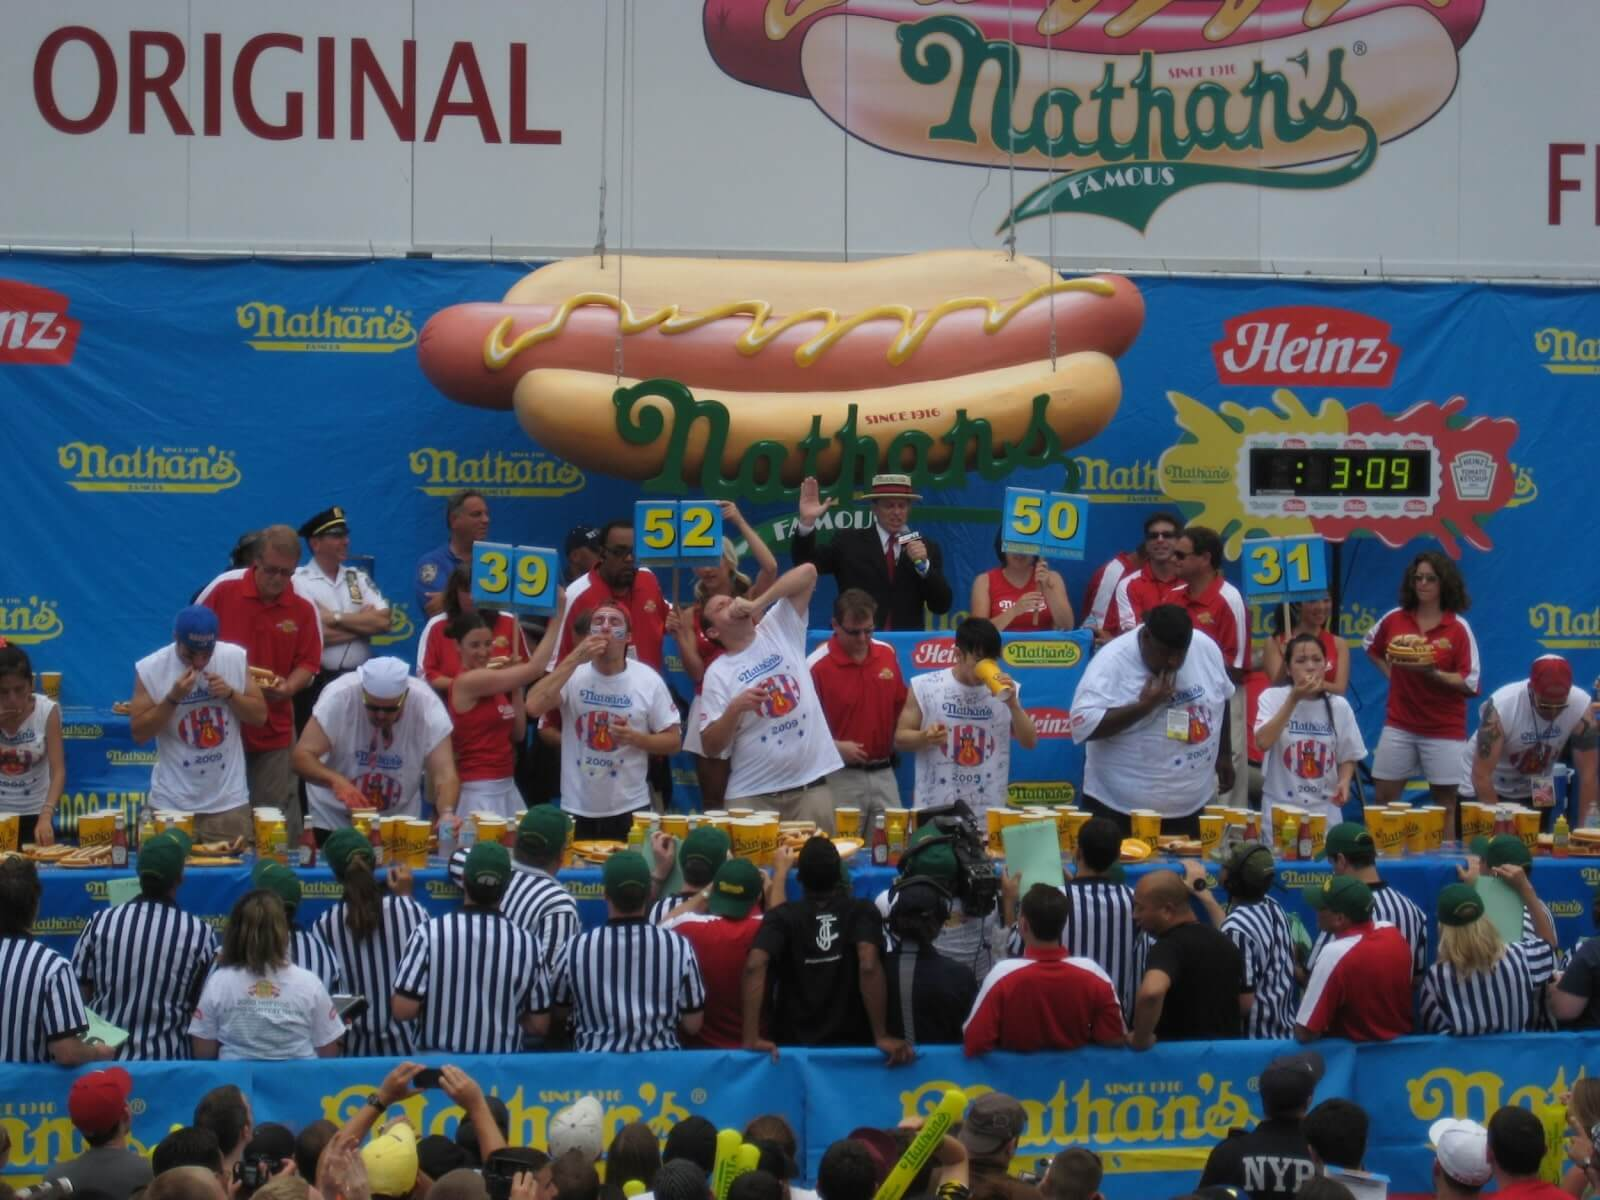 Nathan's 4th of July International Hot Dog Eating Contest